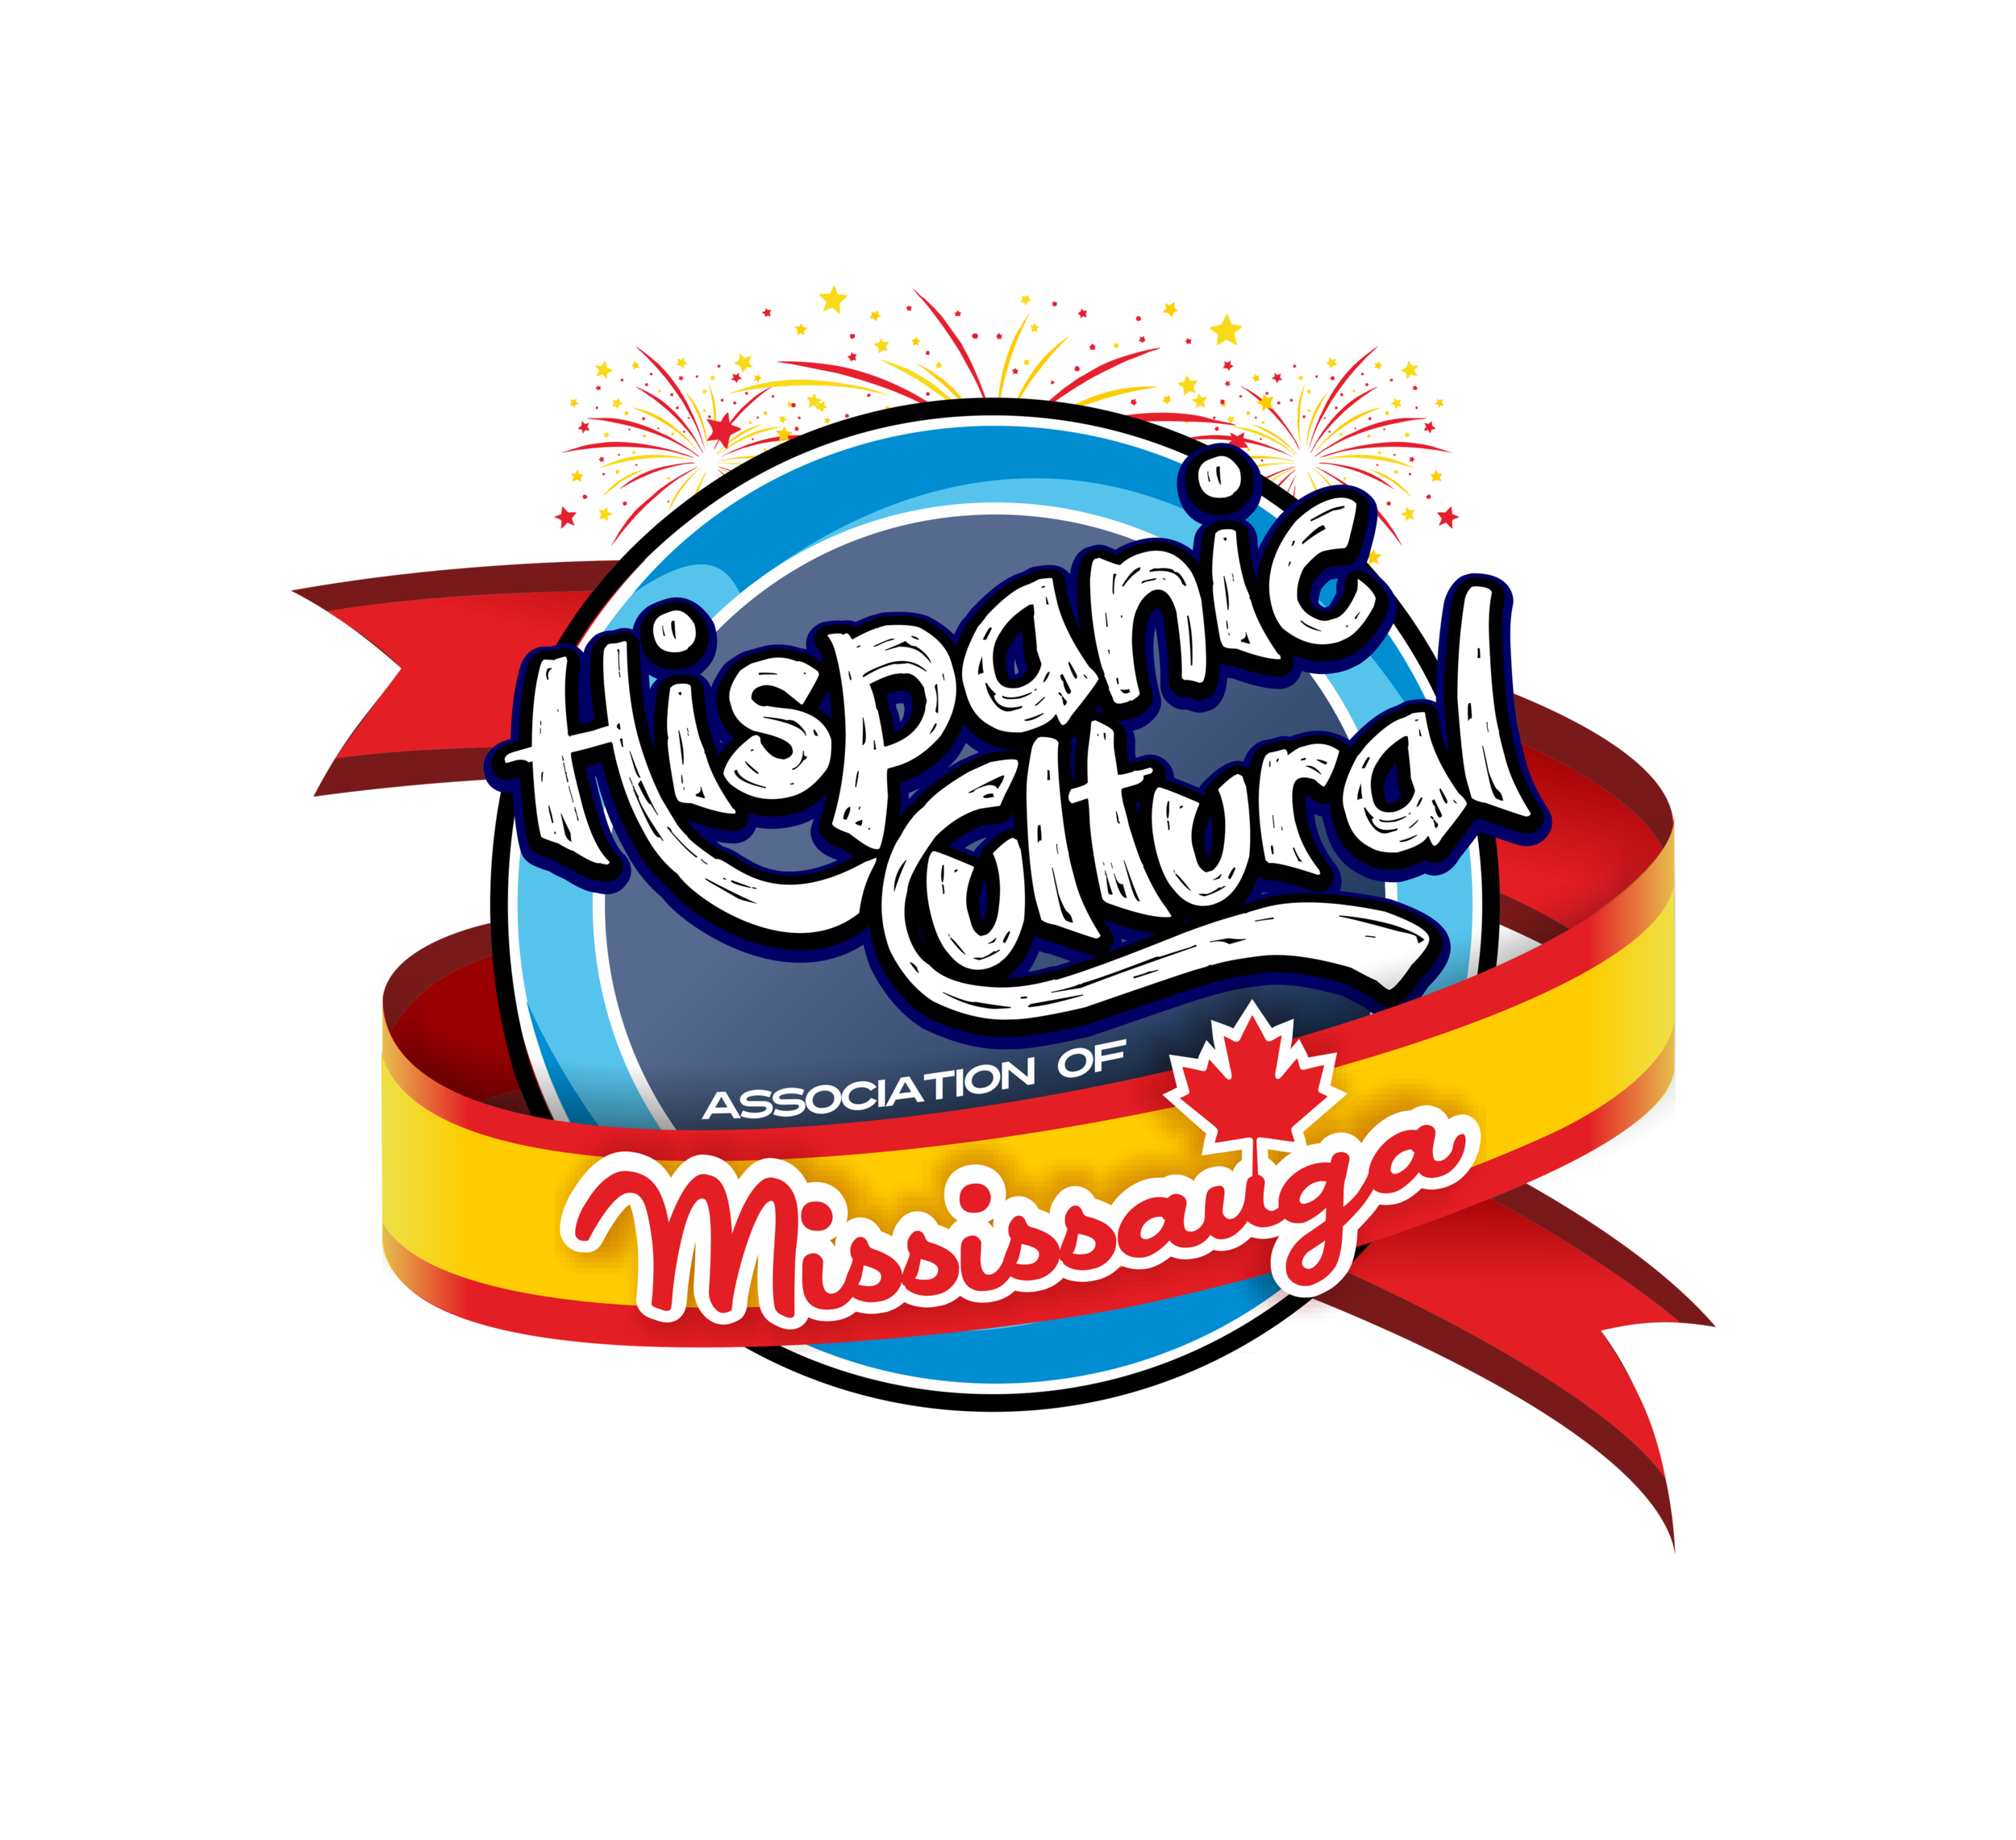 Hpanic Cultural Logo BIG CROPPED.png